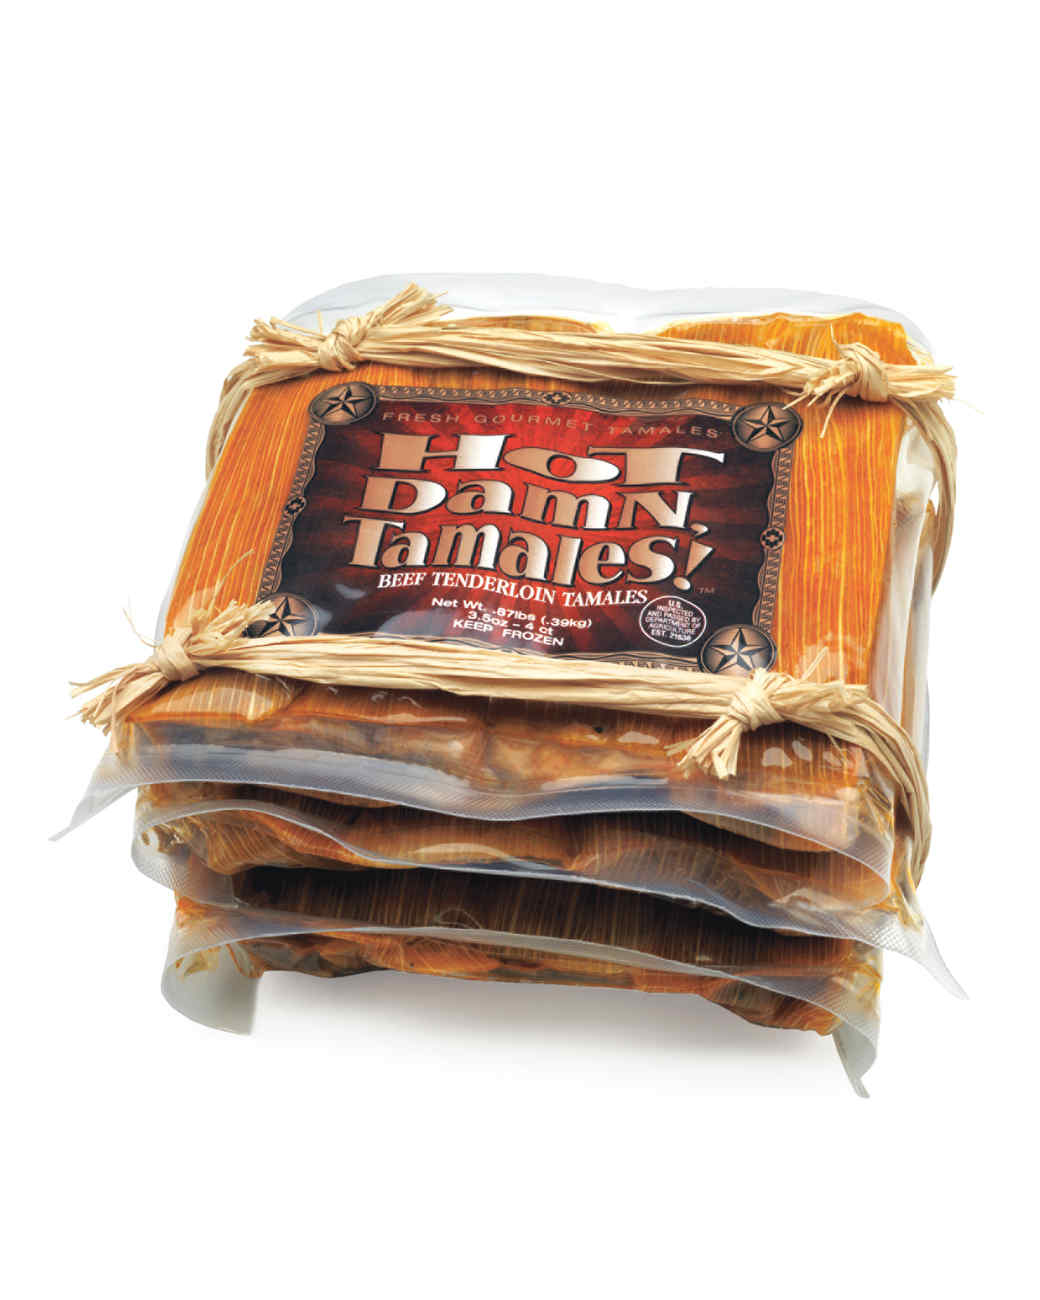 easy-entertaining-hot-damn-tamales-ms108946.jpg